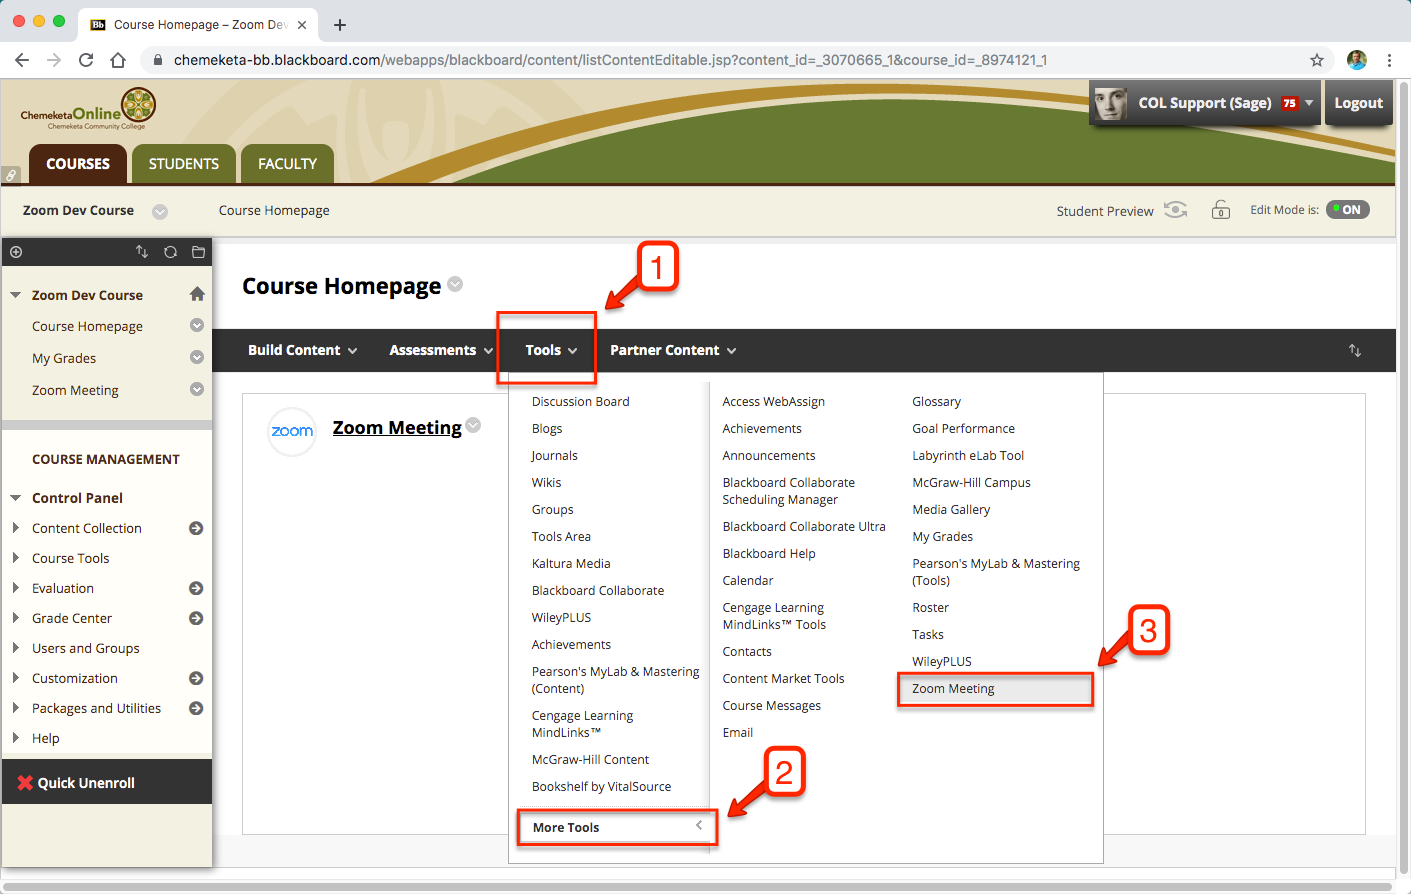 Screenshot showing menu options to add the Zoom tool to an eLearn course.